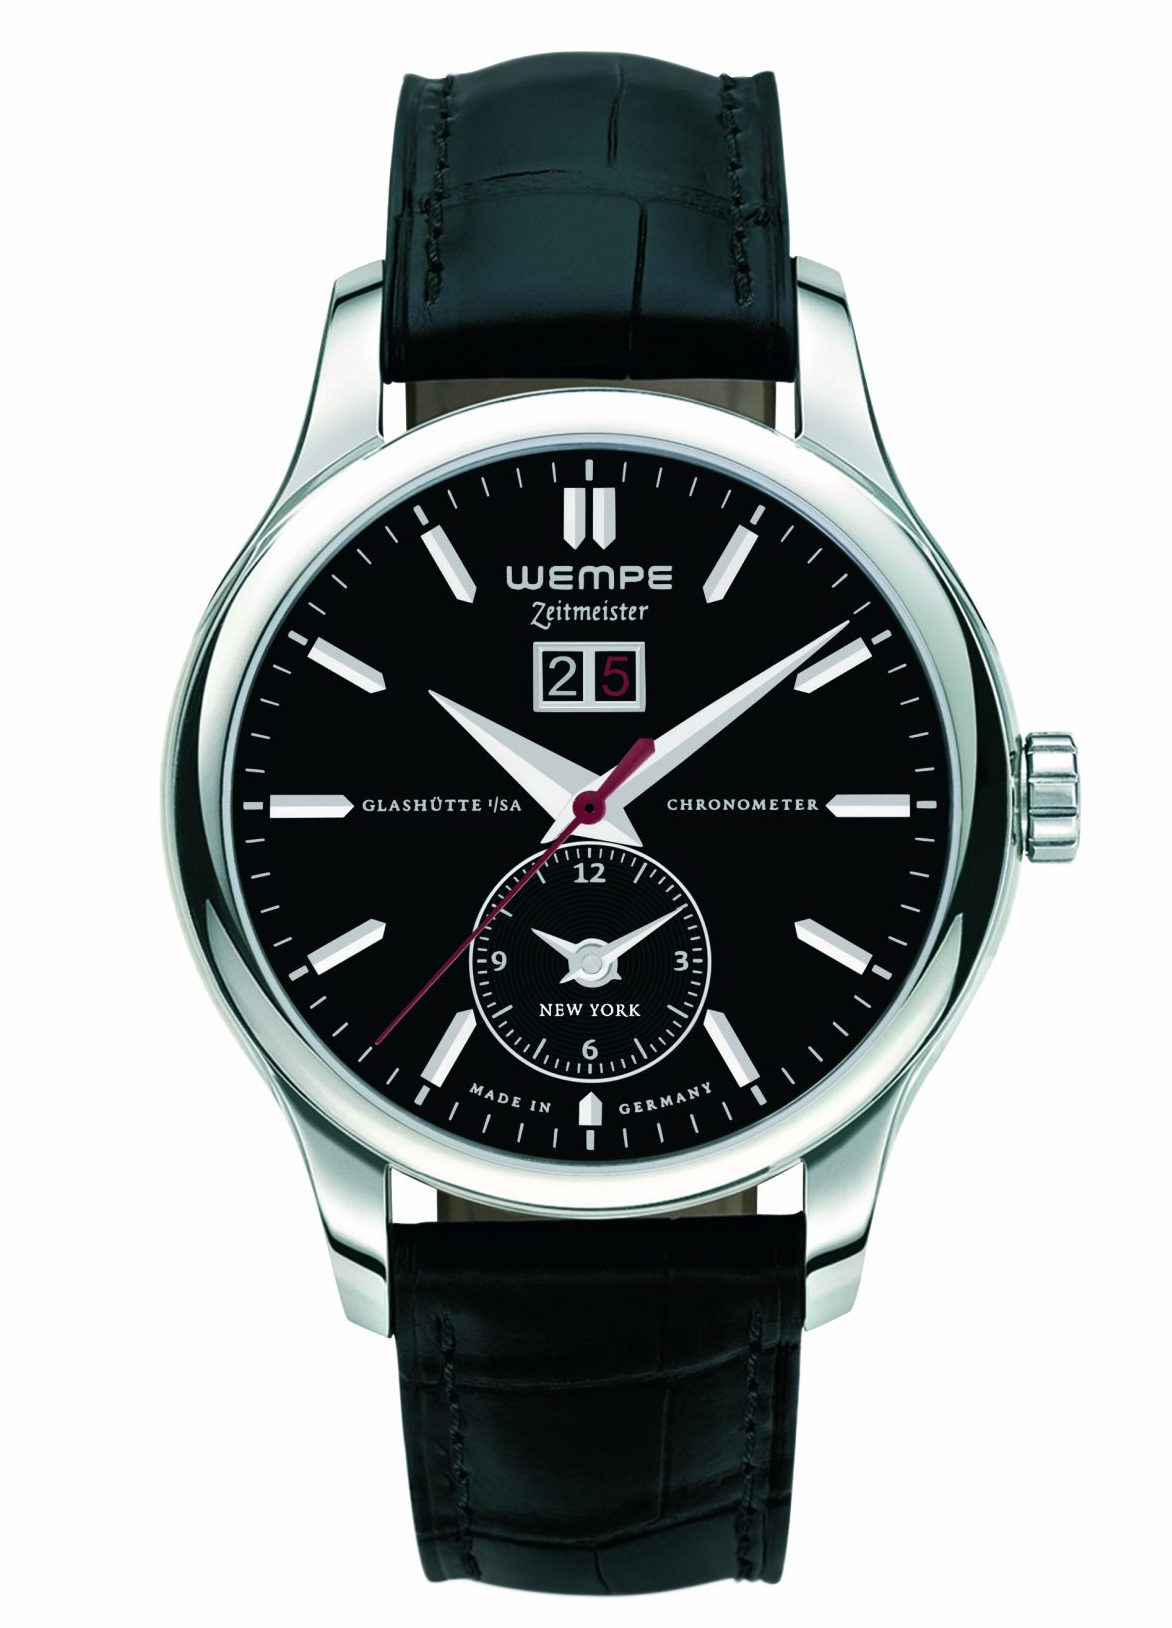 The Wempe Zeitmeister 5th Avenue Limited Edition watch with black dial